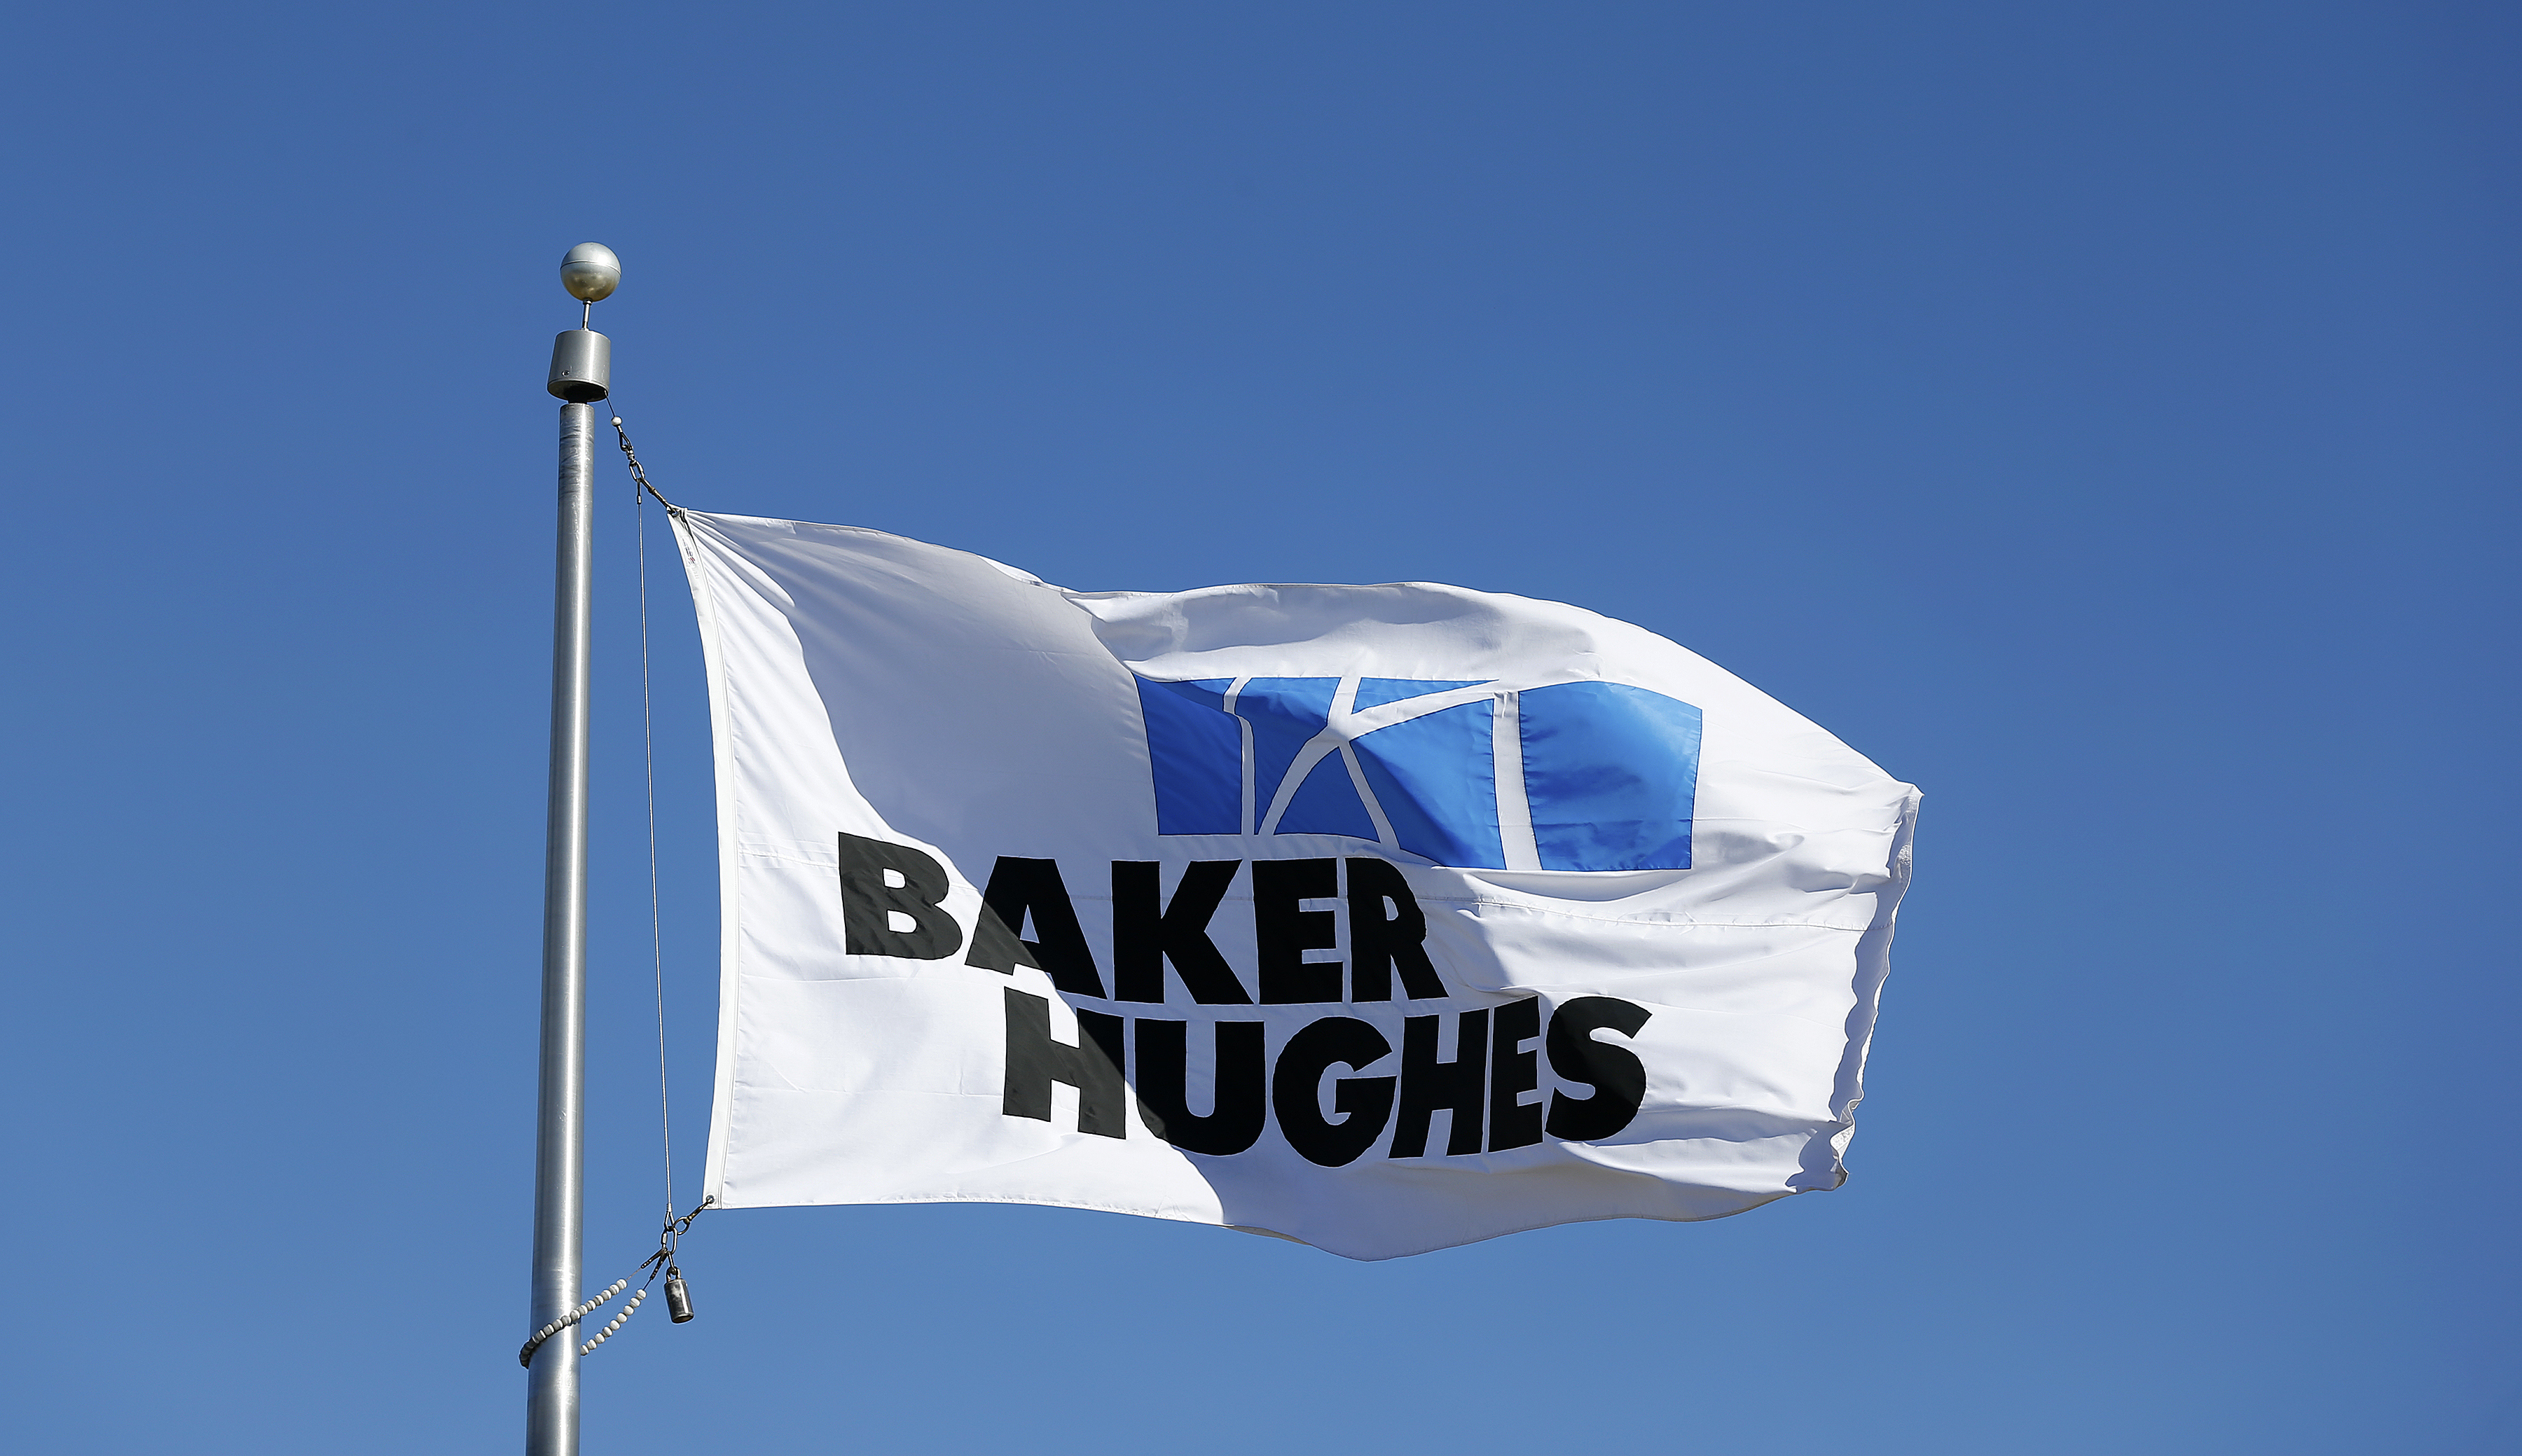 A flag with the Baker Hughes Inc. logo flies outside one of the company's facilities in Houston, Texas, U.S., on Monday, Nov. 17, 2014.